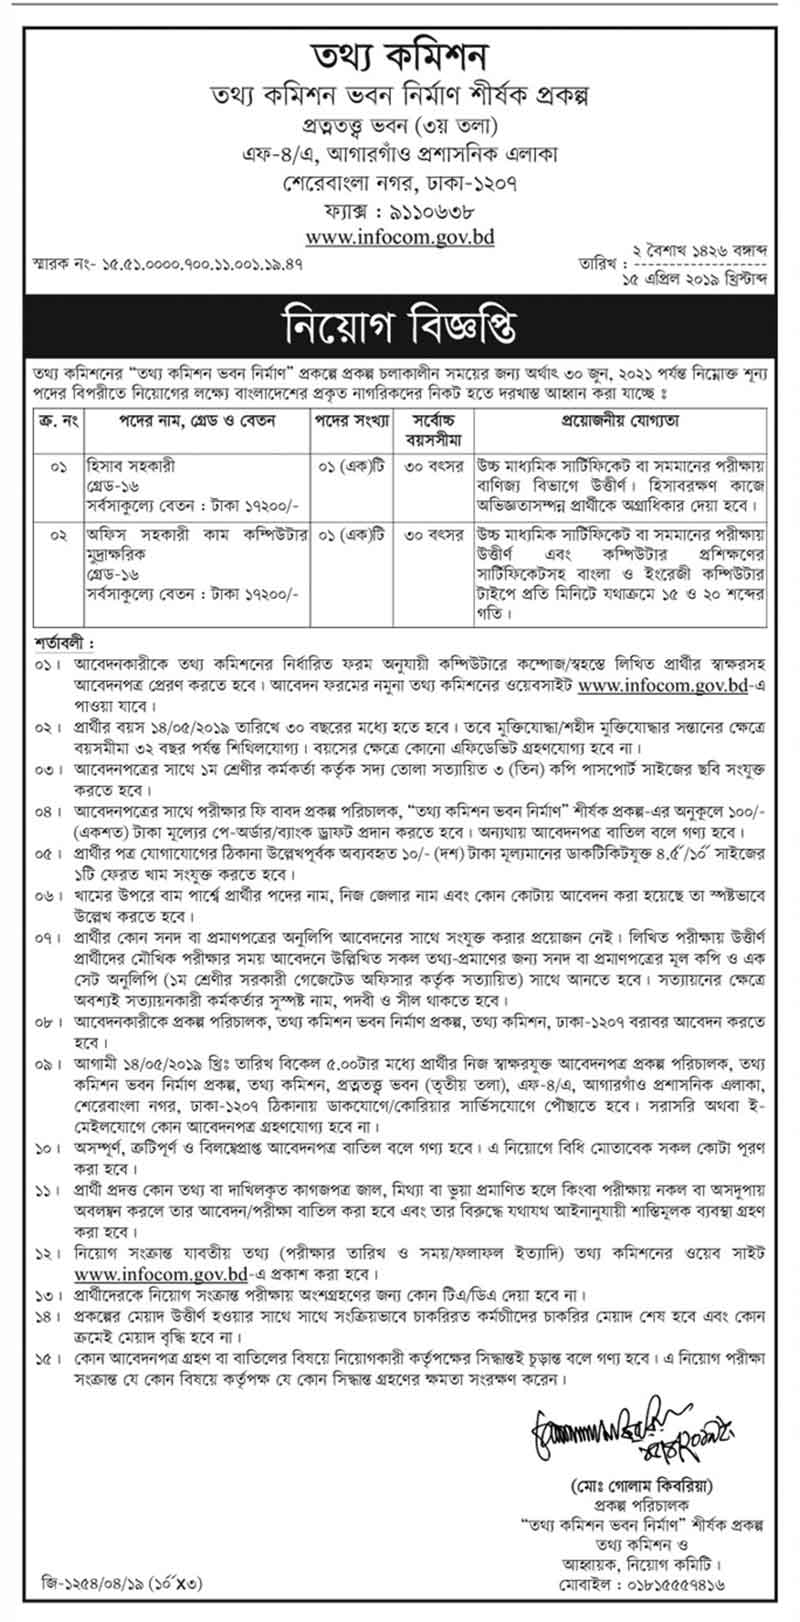 Information Commission new recruitment notice